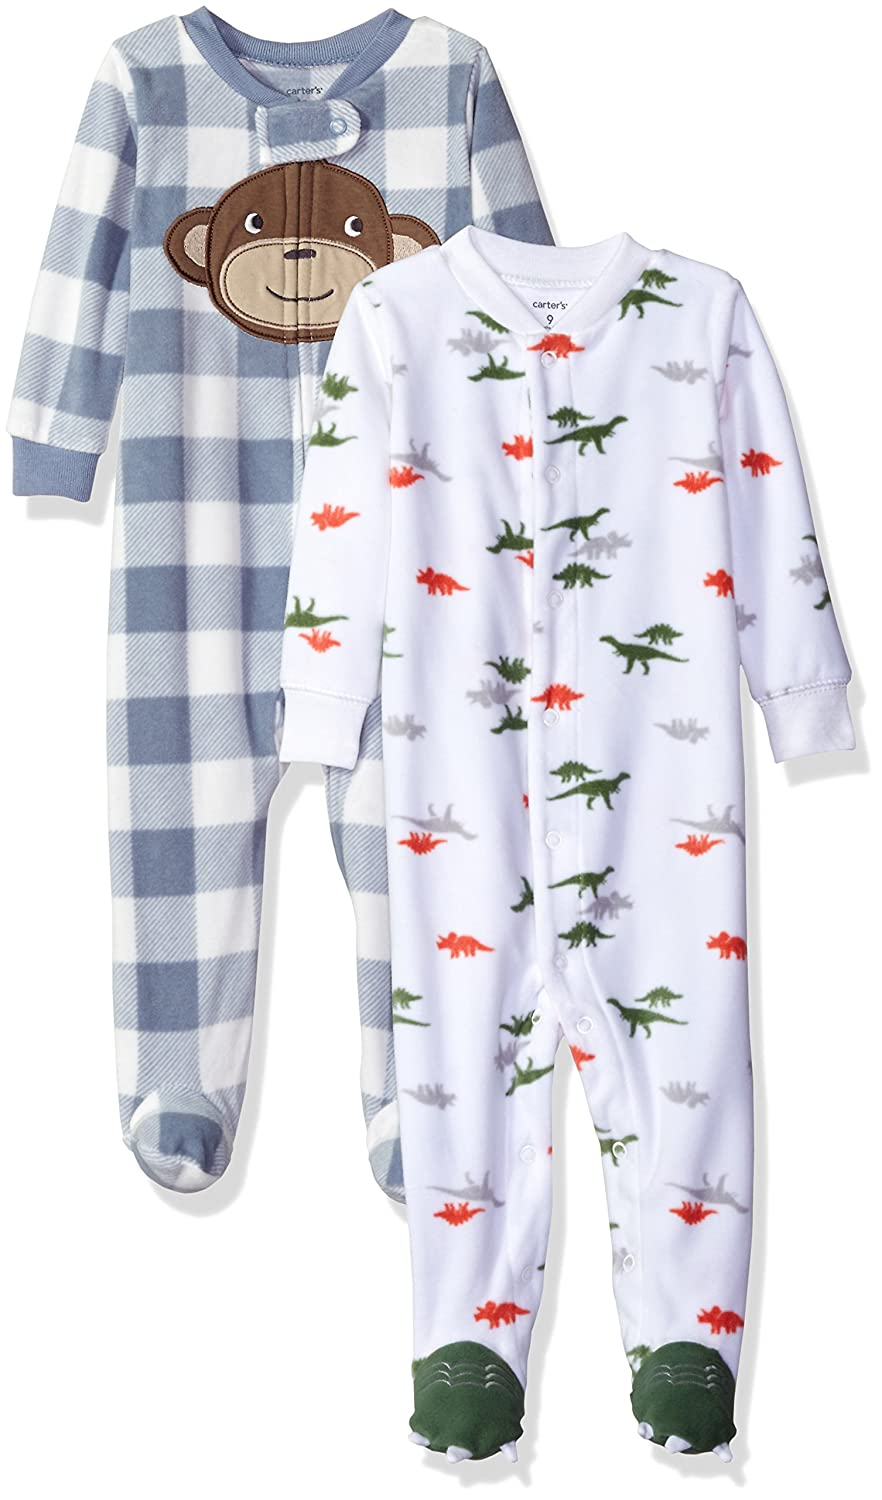 Carter's Boys' 2-Pack Microfleece Sleep and Play Carters KBC 115G30-1